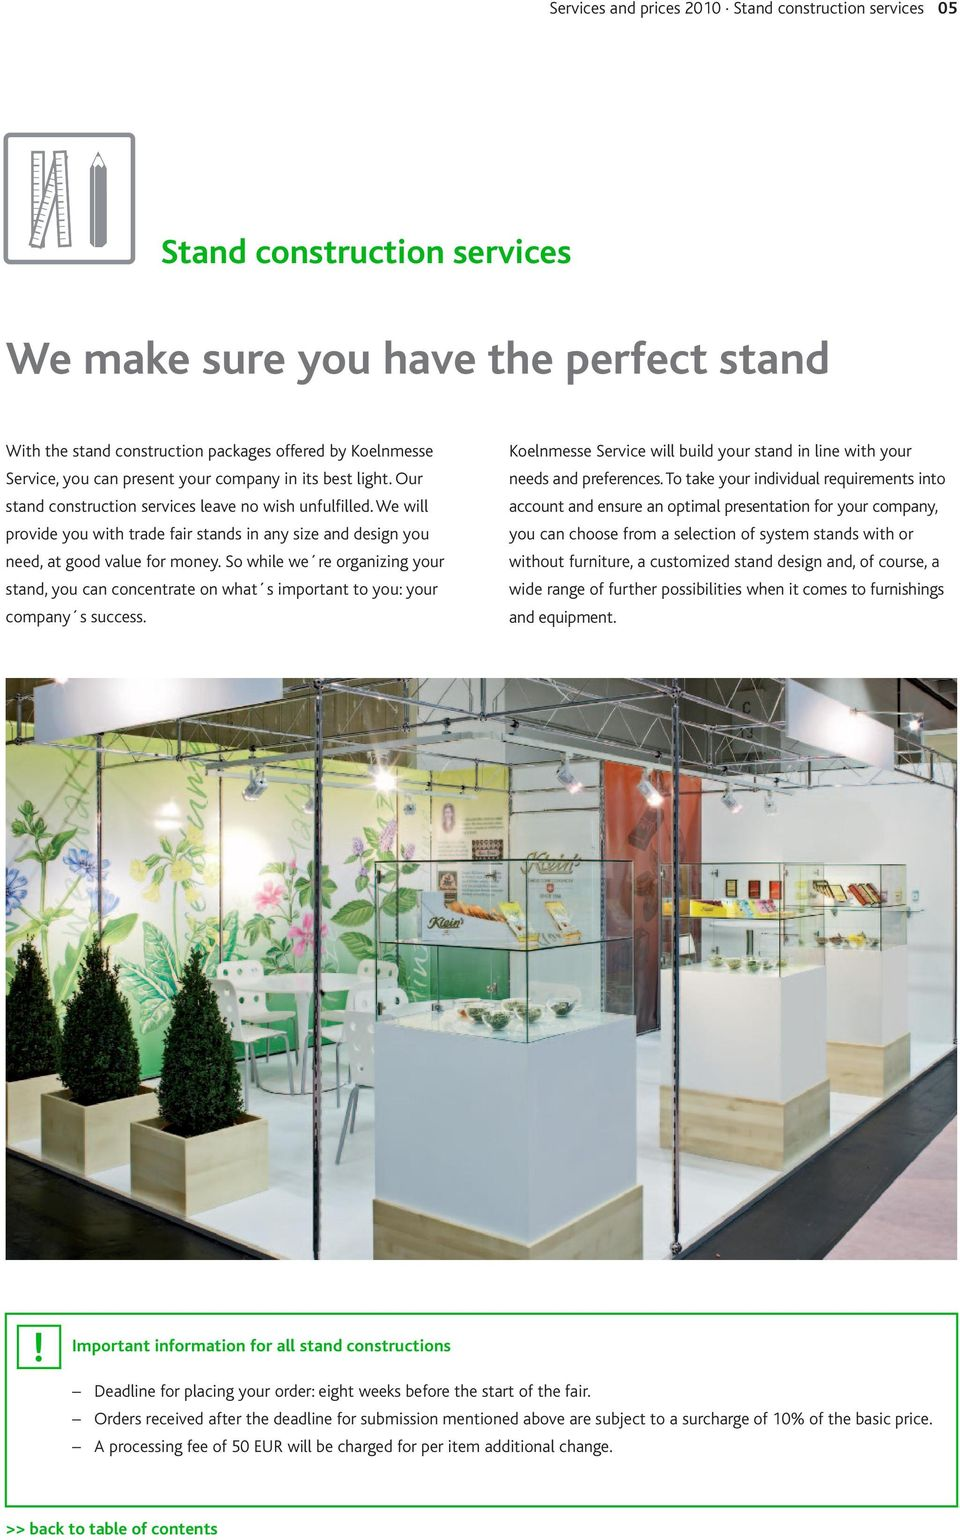 So while we re organizing your stand, you can concentrate on what s important to you: your company s success. Koelnmesse Service will build your stand in line with your needs and preferences.